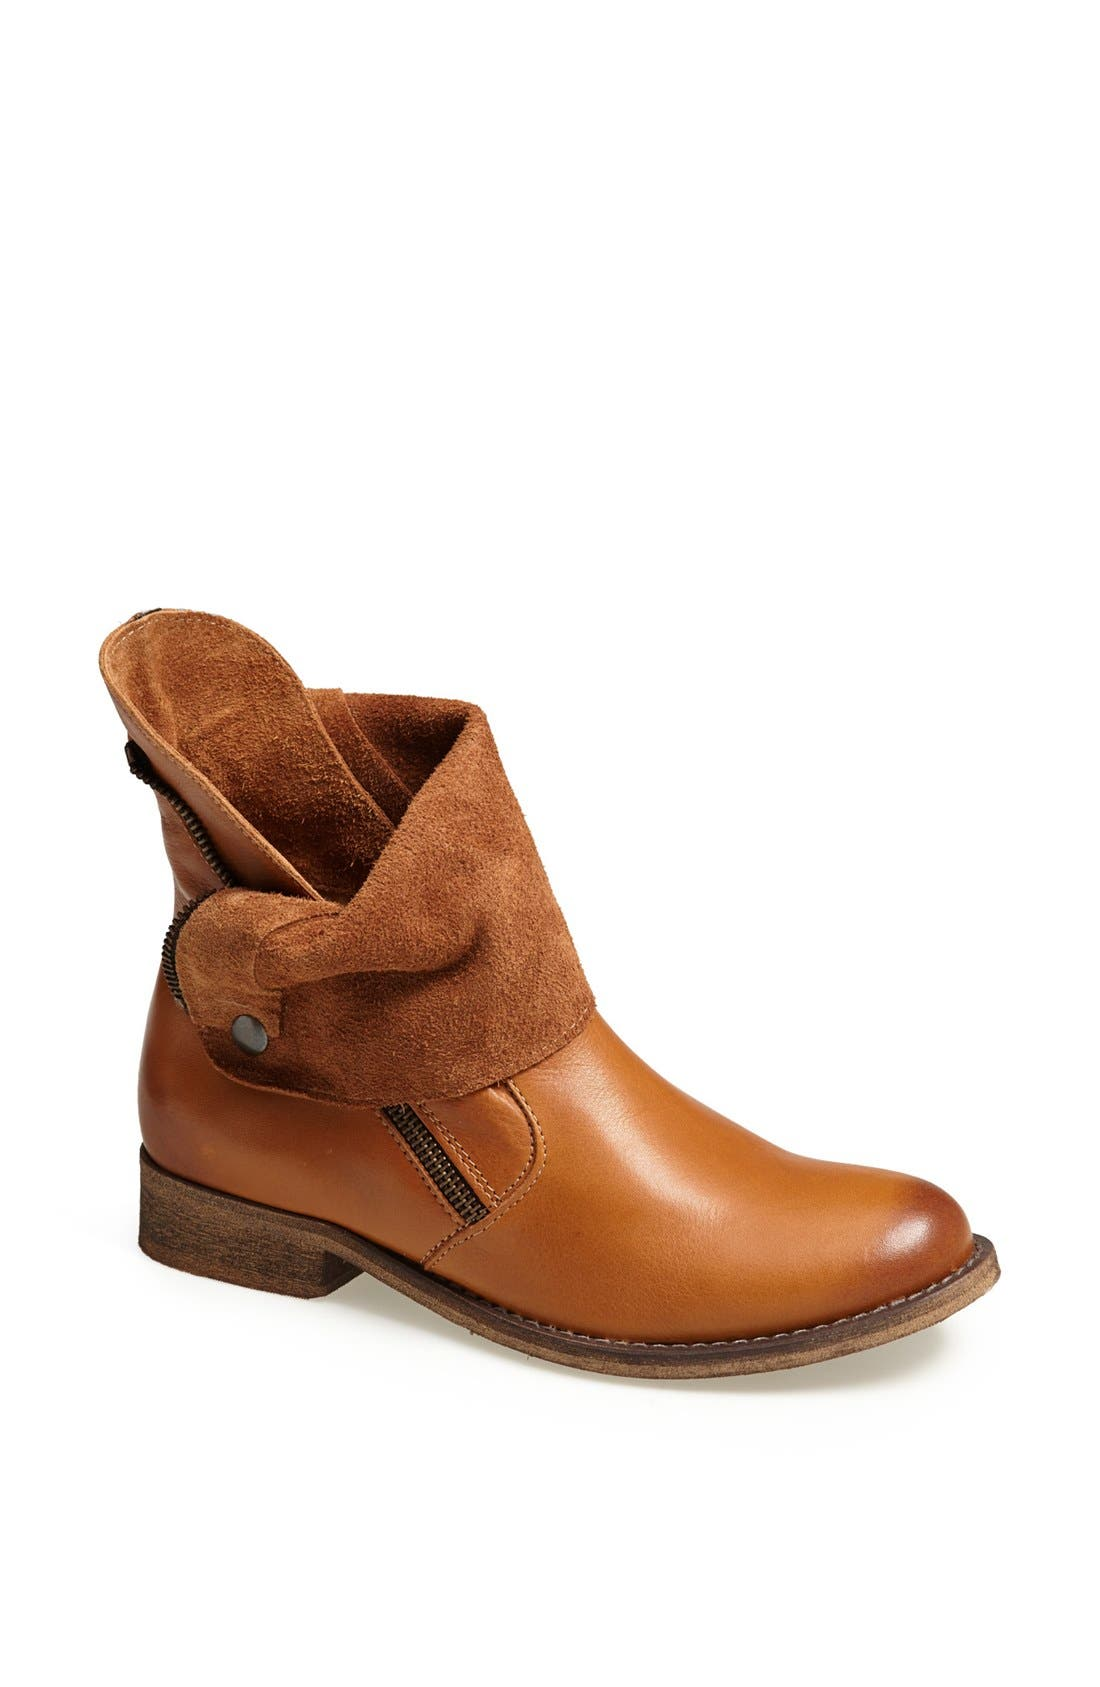 Main Image - Steve Madden 'Solemate' Leather Bootie